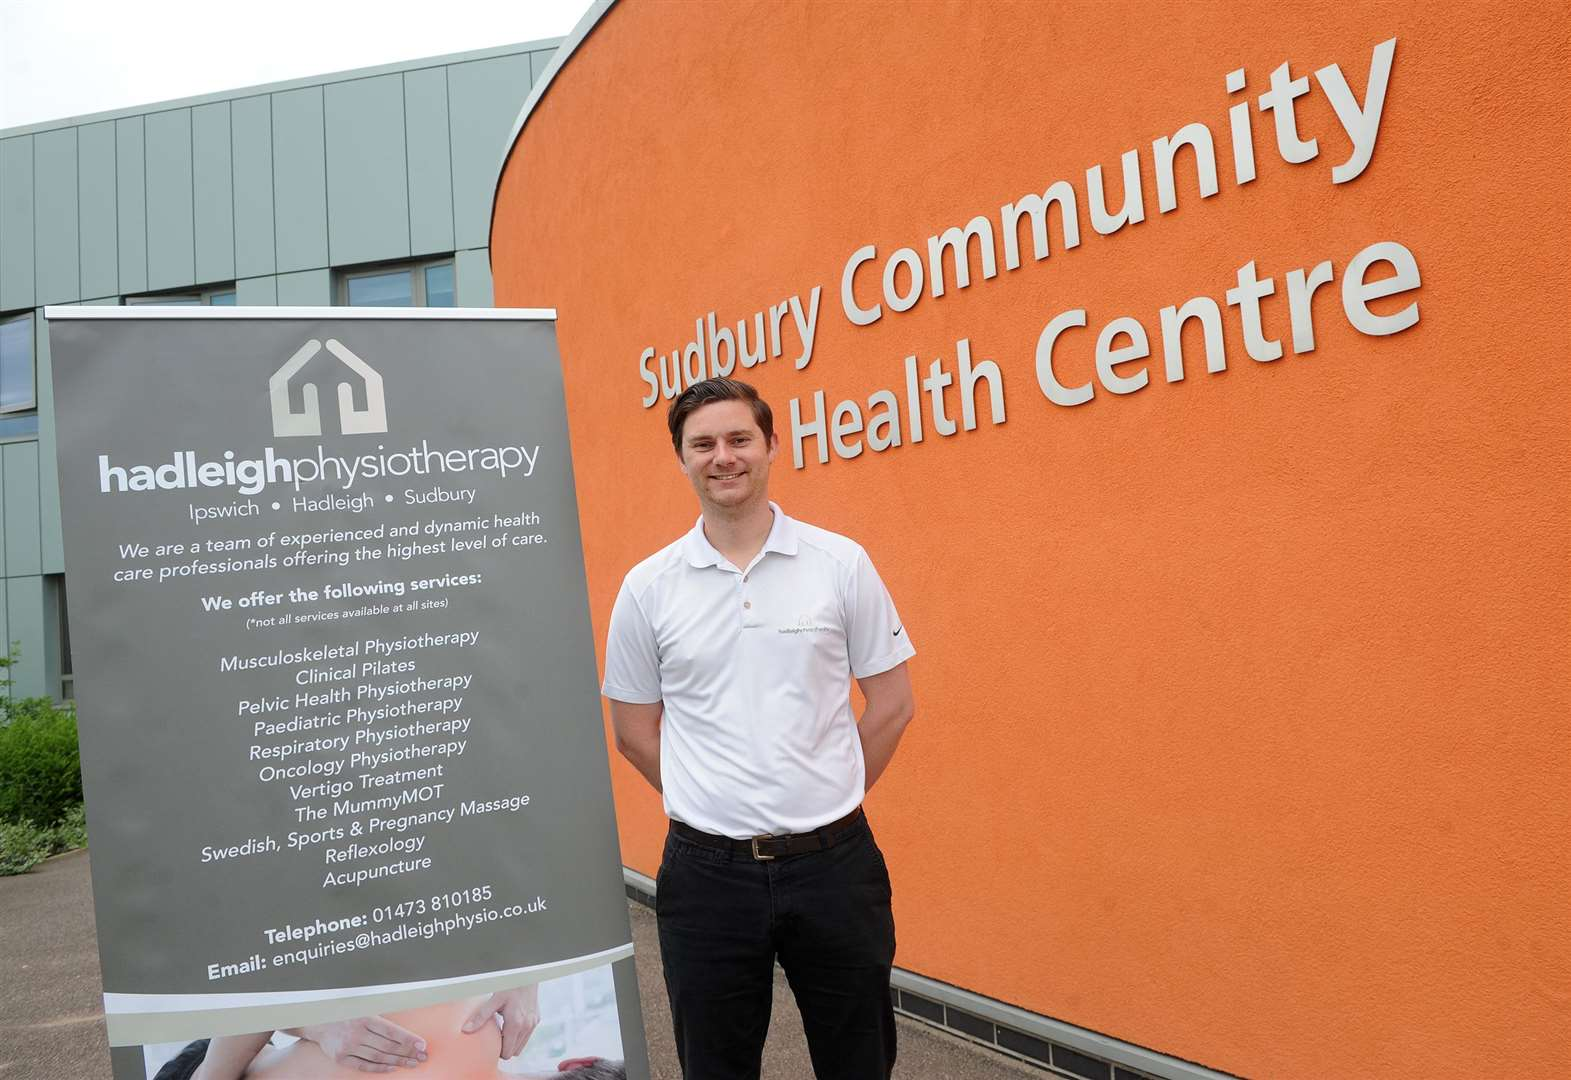 New physiotherapy clinic set to launch at Sudbury Community Health Centre